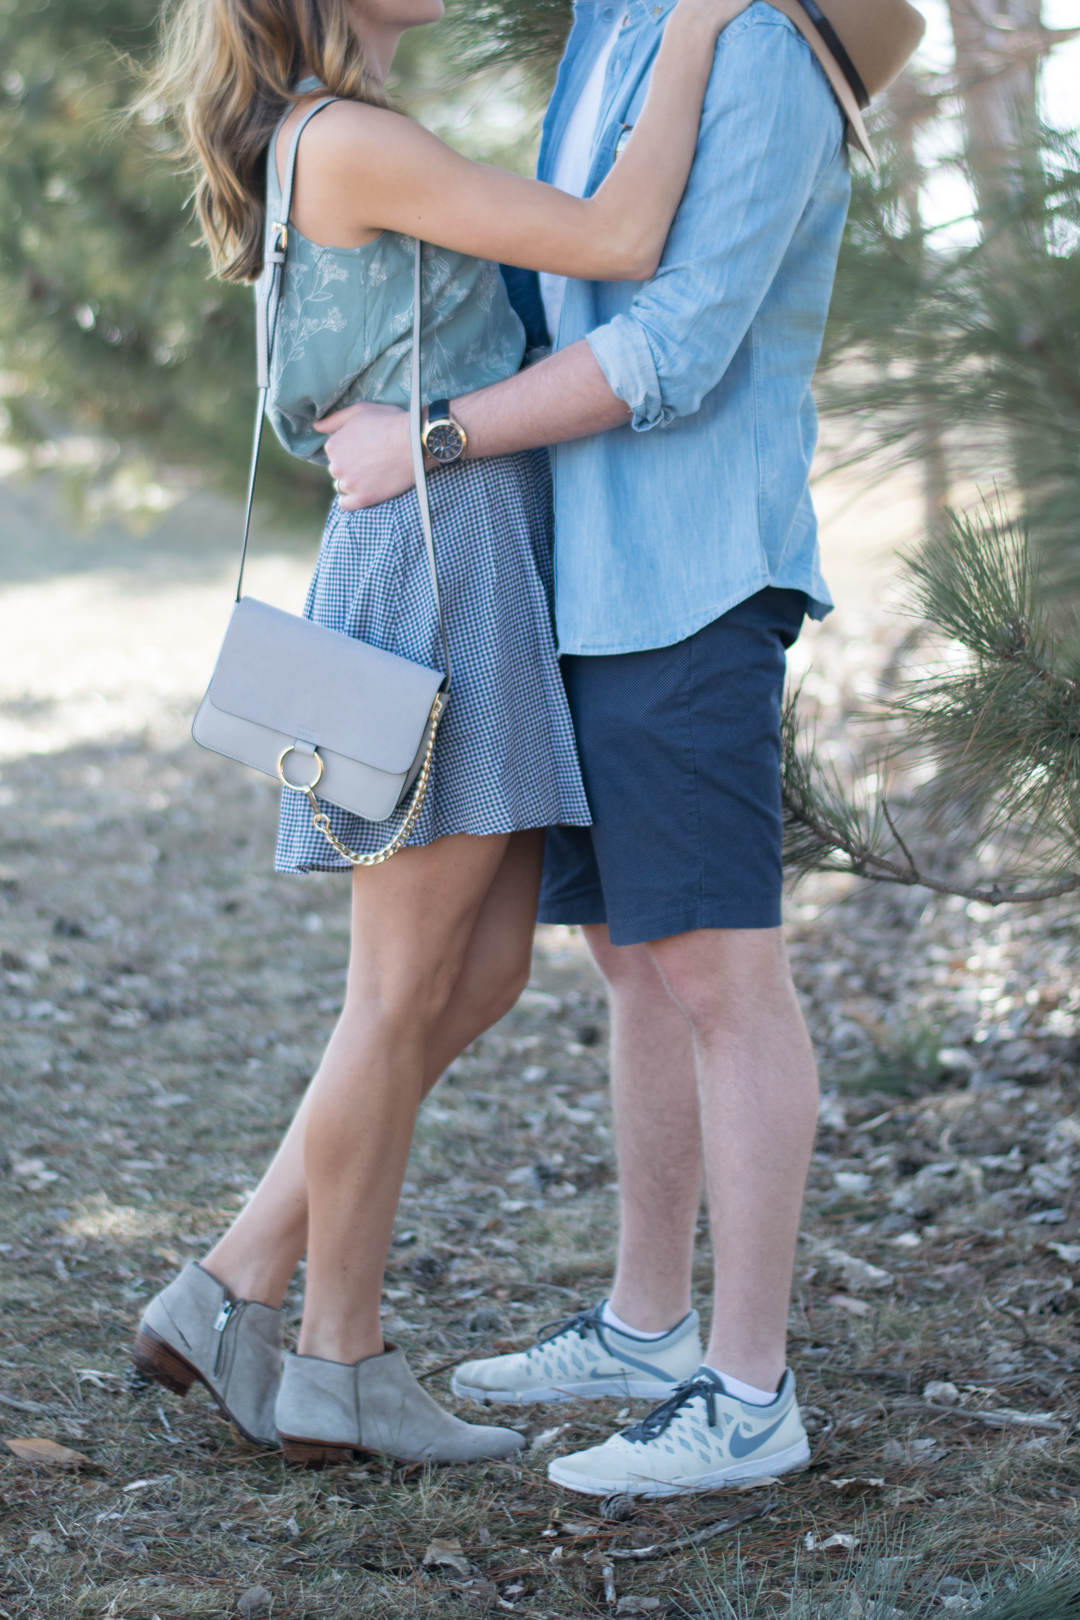 Day-Date-Outfit-Ideas-For-Her-Him-29